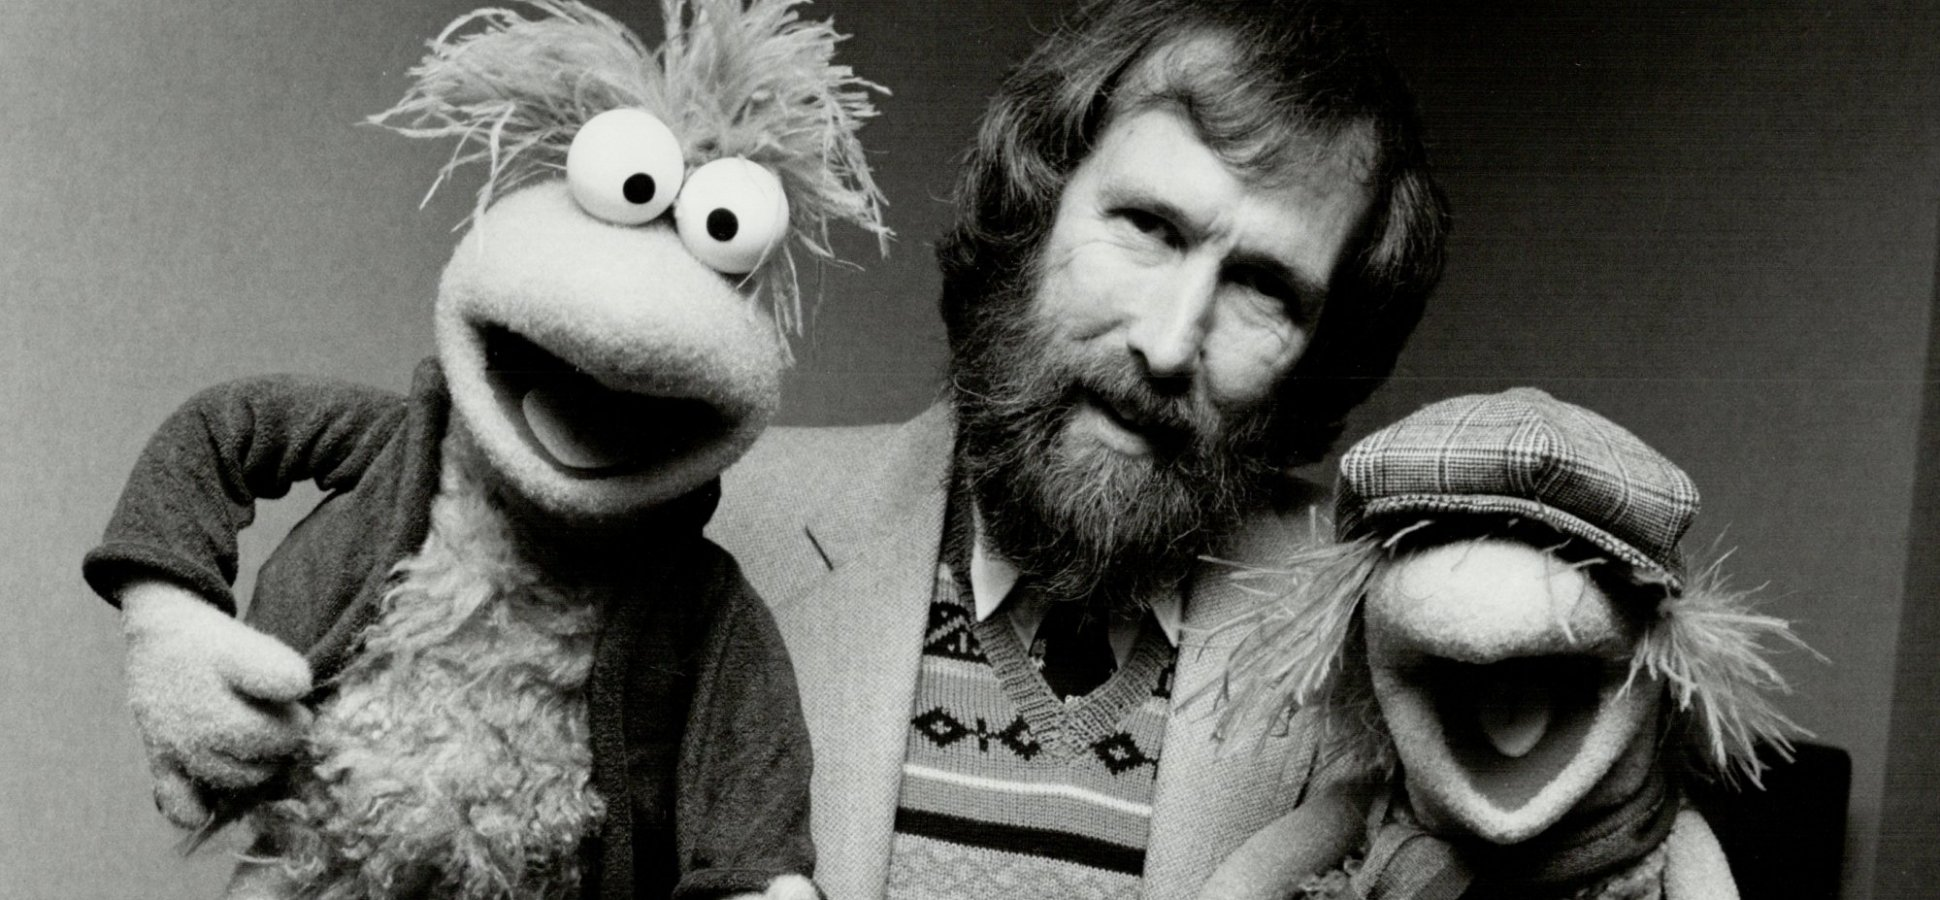 30 Quotes That Will Remind You of the Magic of Jim Henson